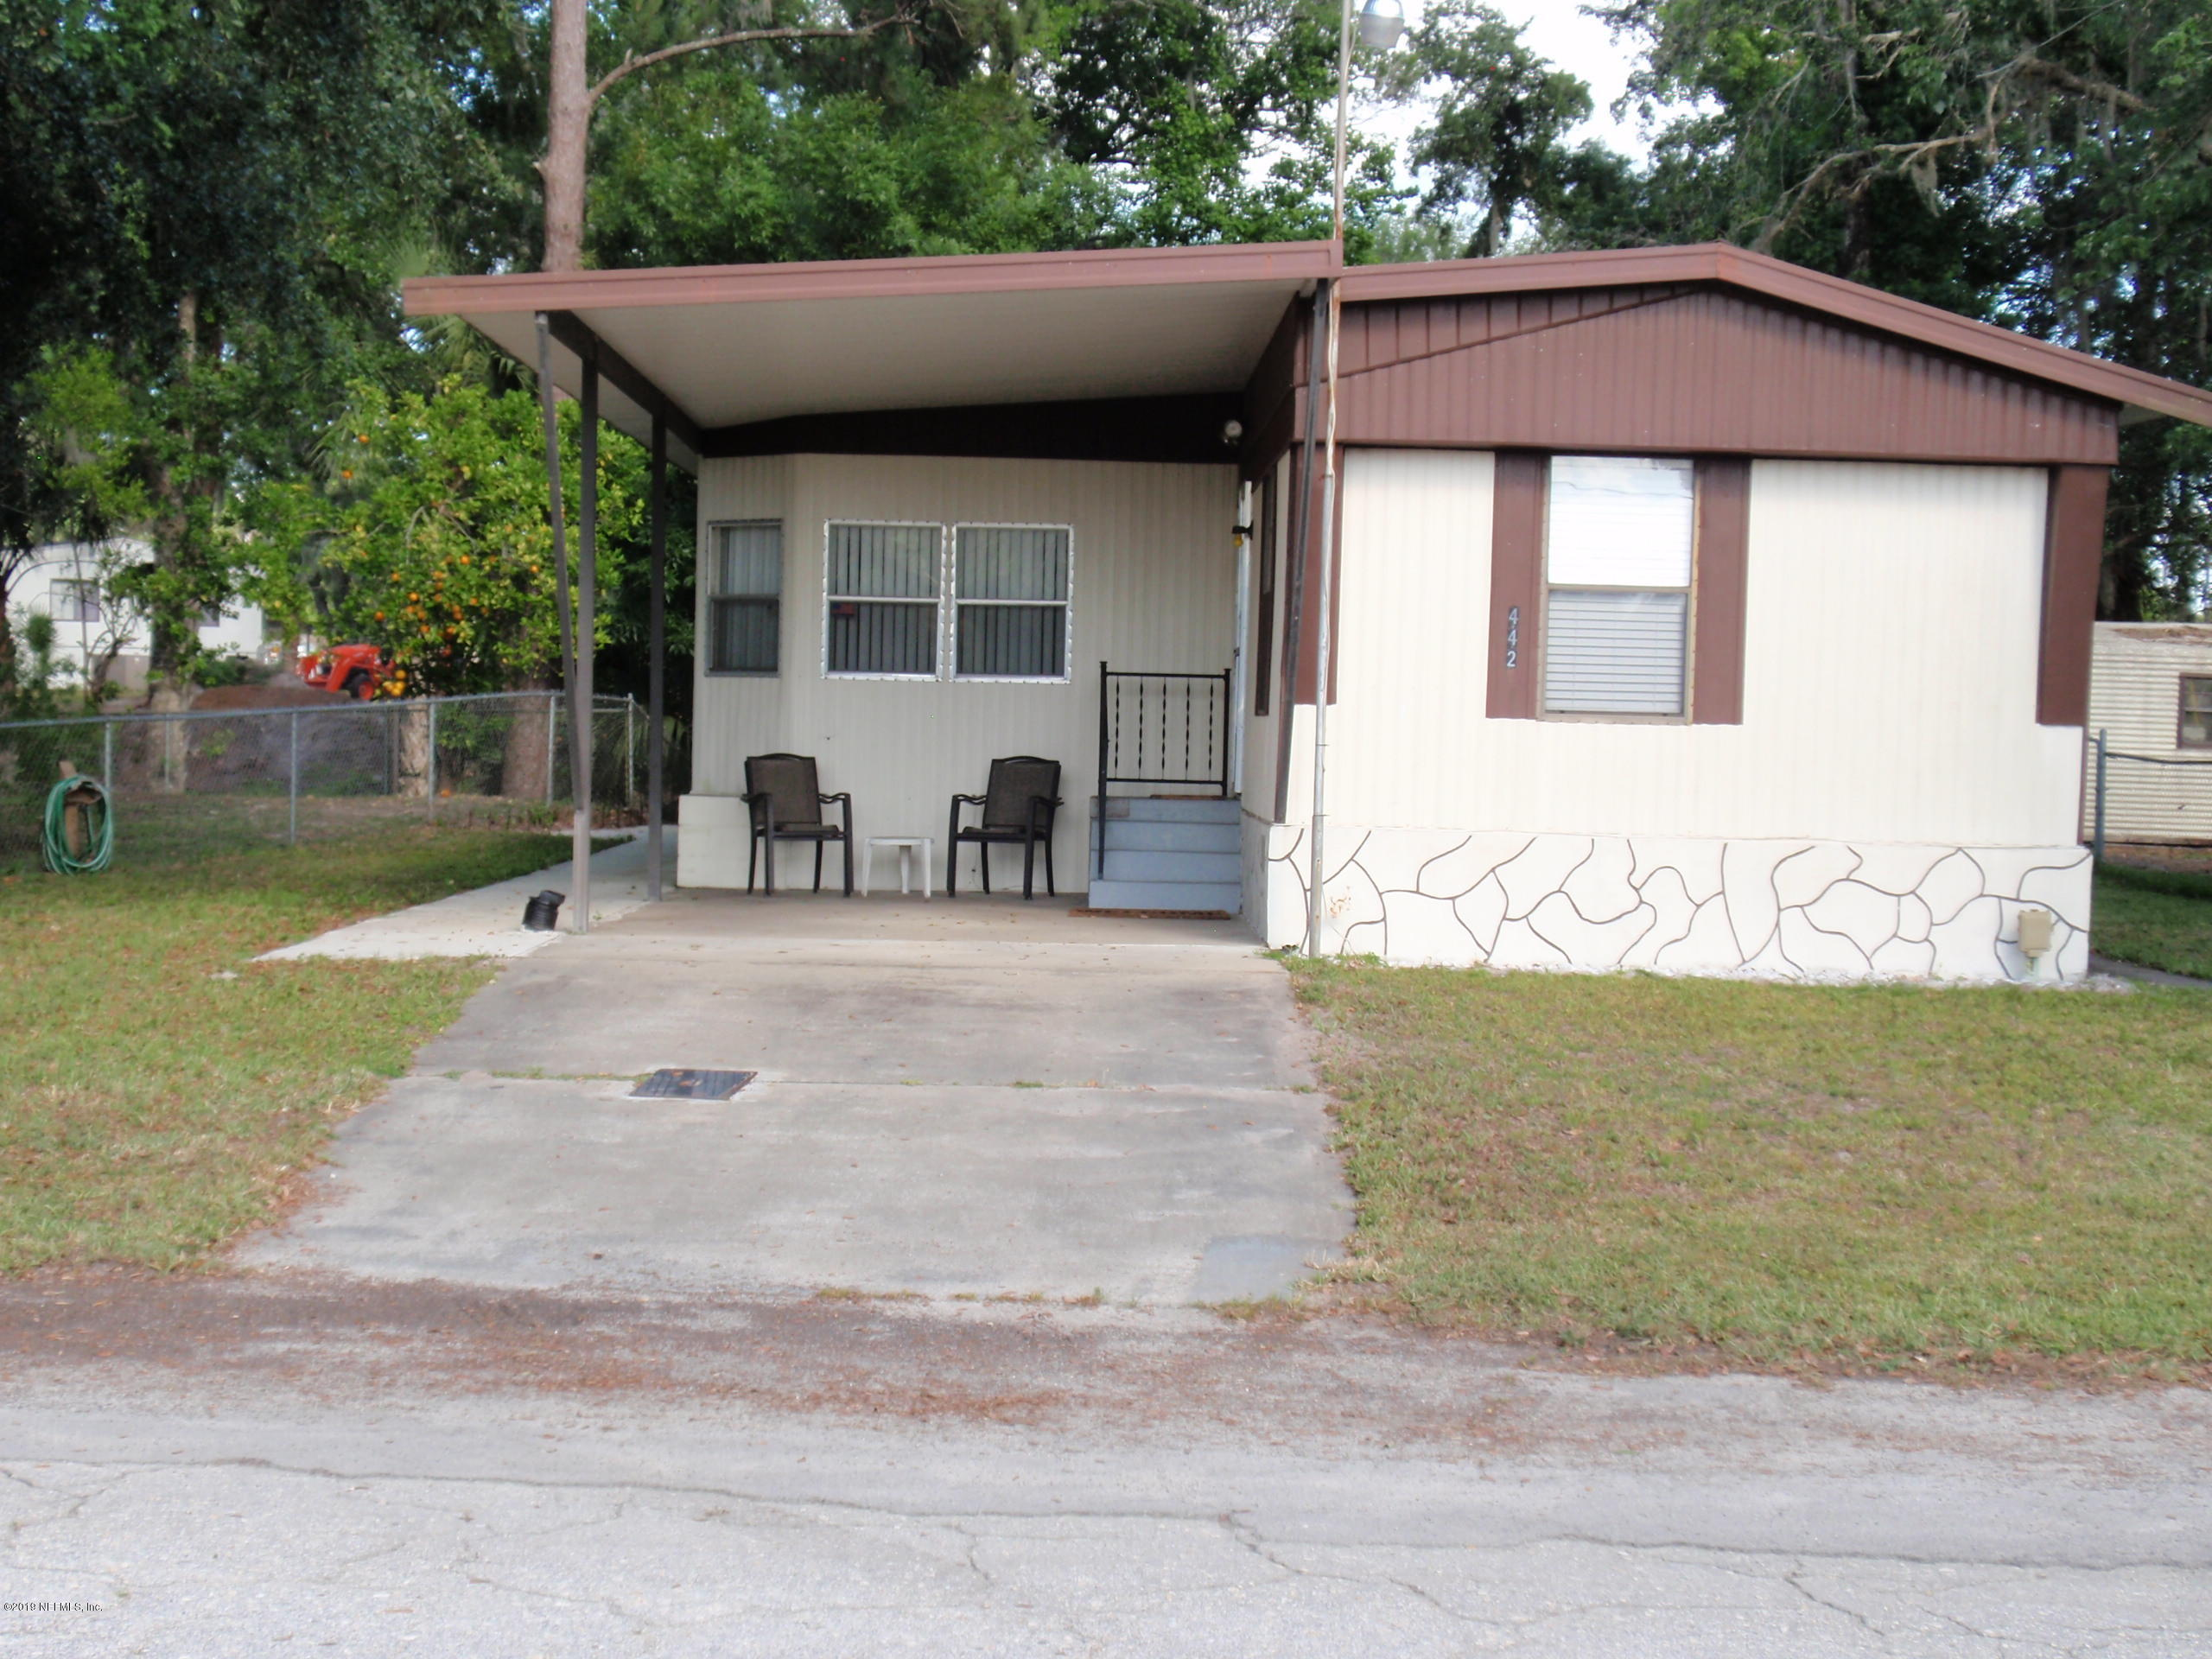 442 COVE, SATSUMA, FLORIDA 32189, 2 Bedrooms Bedrooms, ,1 BathroomBathrooms,Residential - mobile home,For sale,COVE,994970